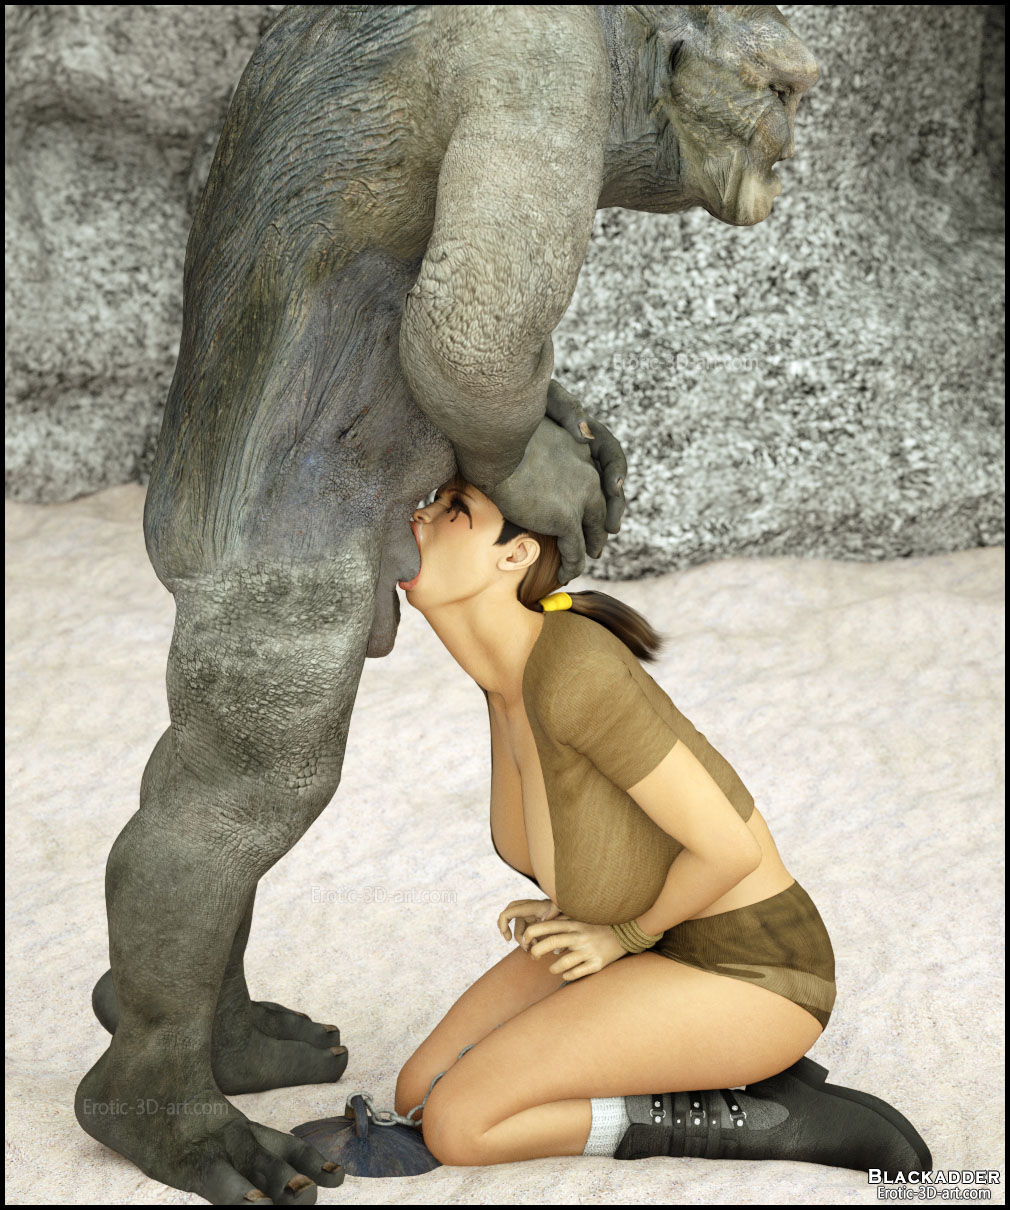 Lara croft fucks monsters video pornos images